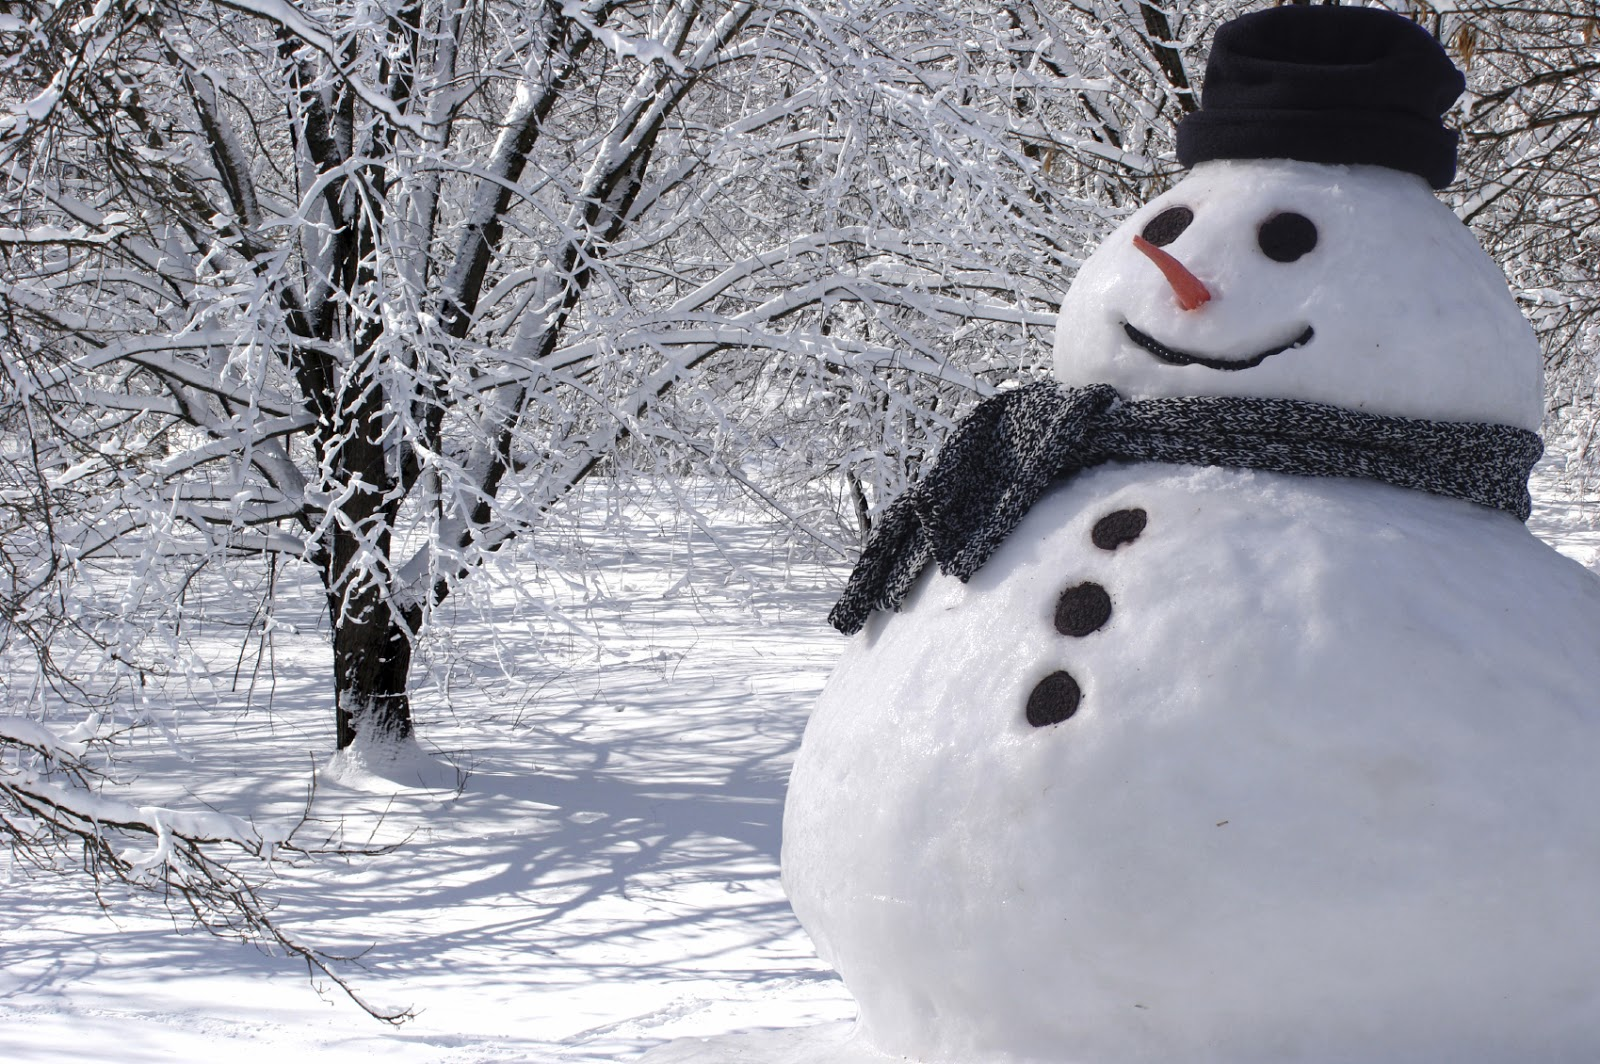 On Writers Day We Could Build A Snowman  The Return of the